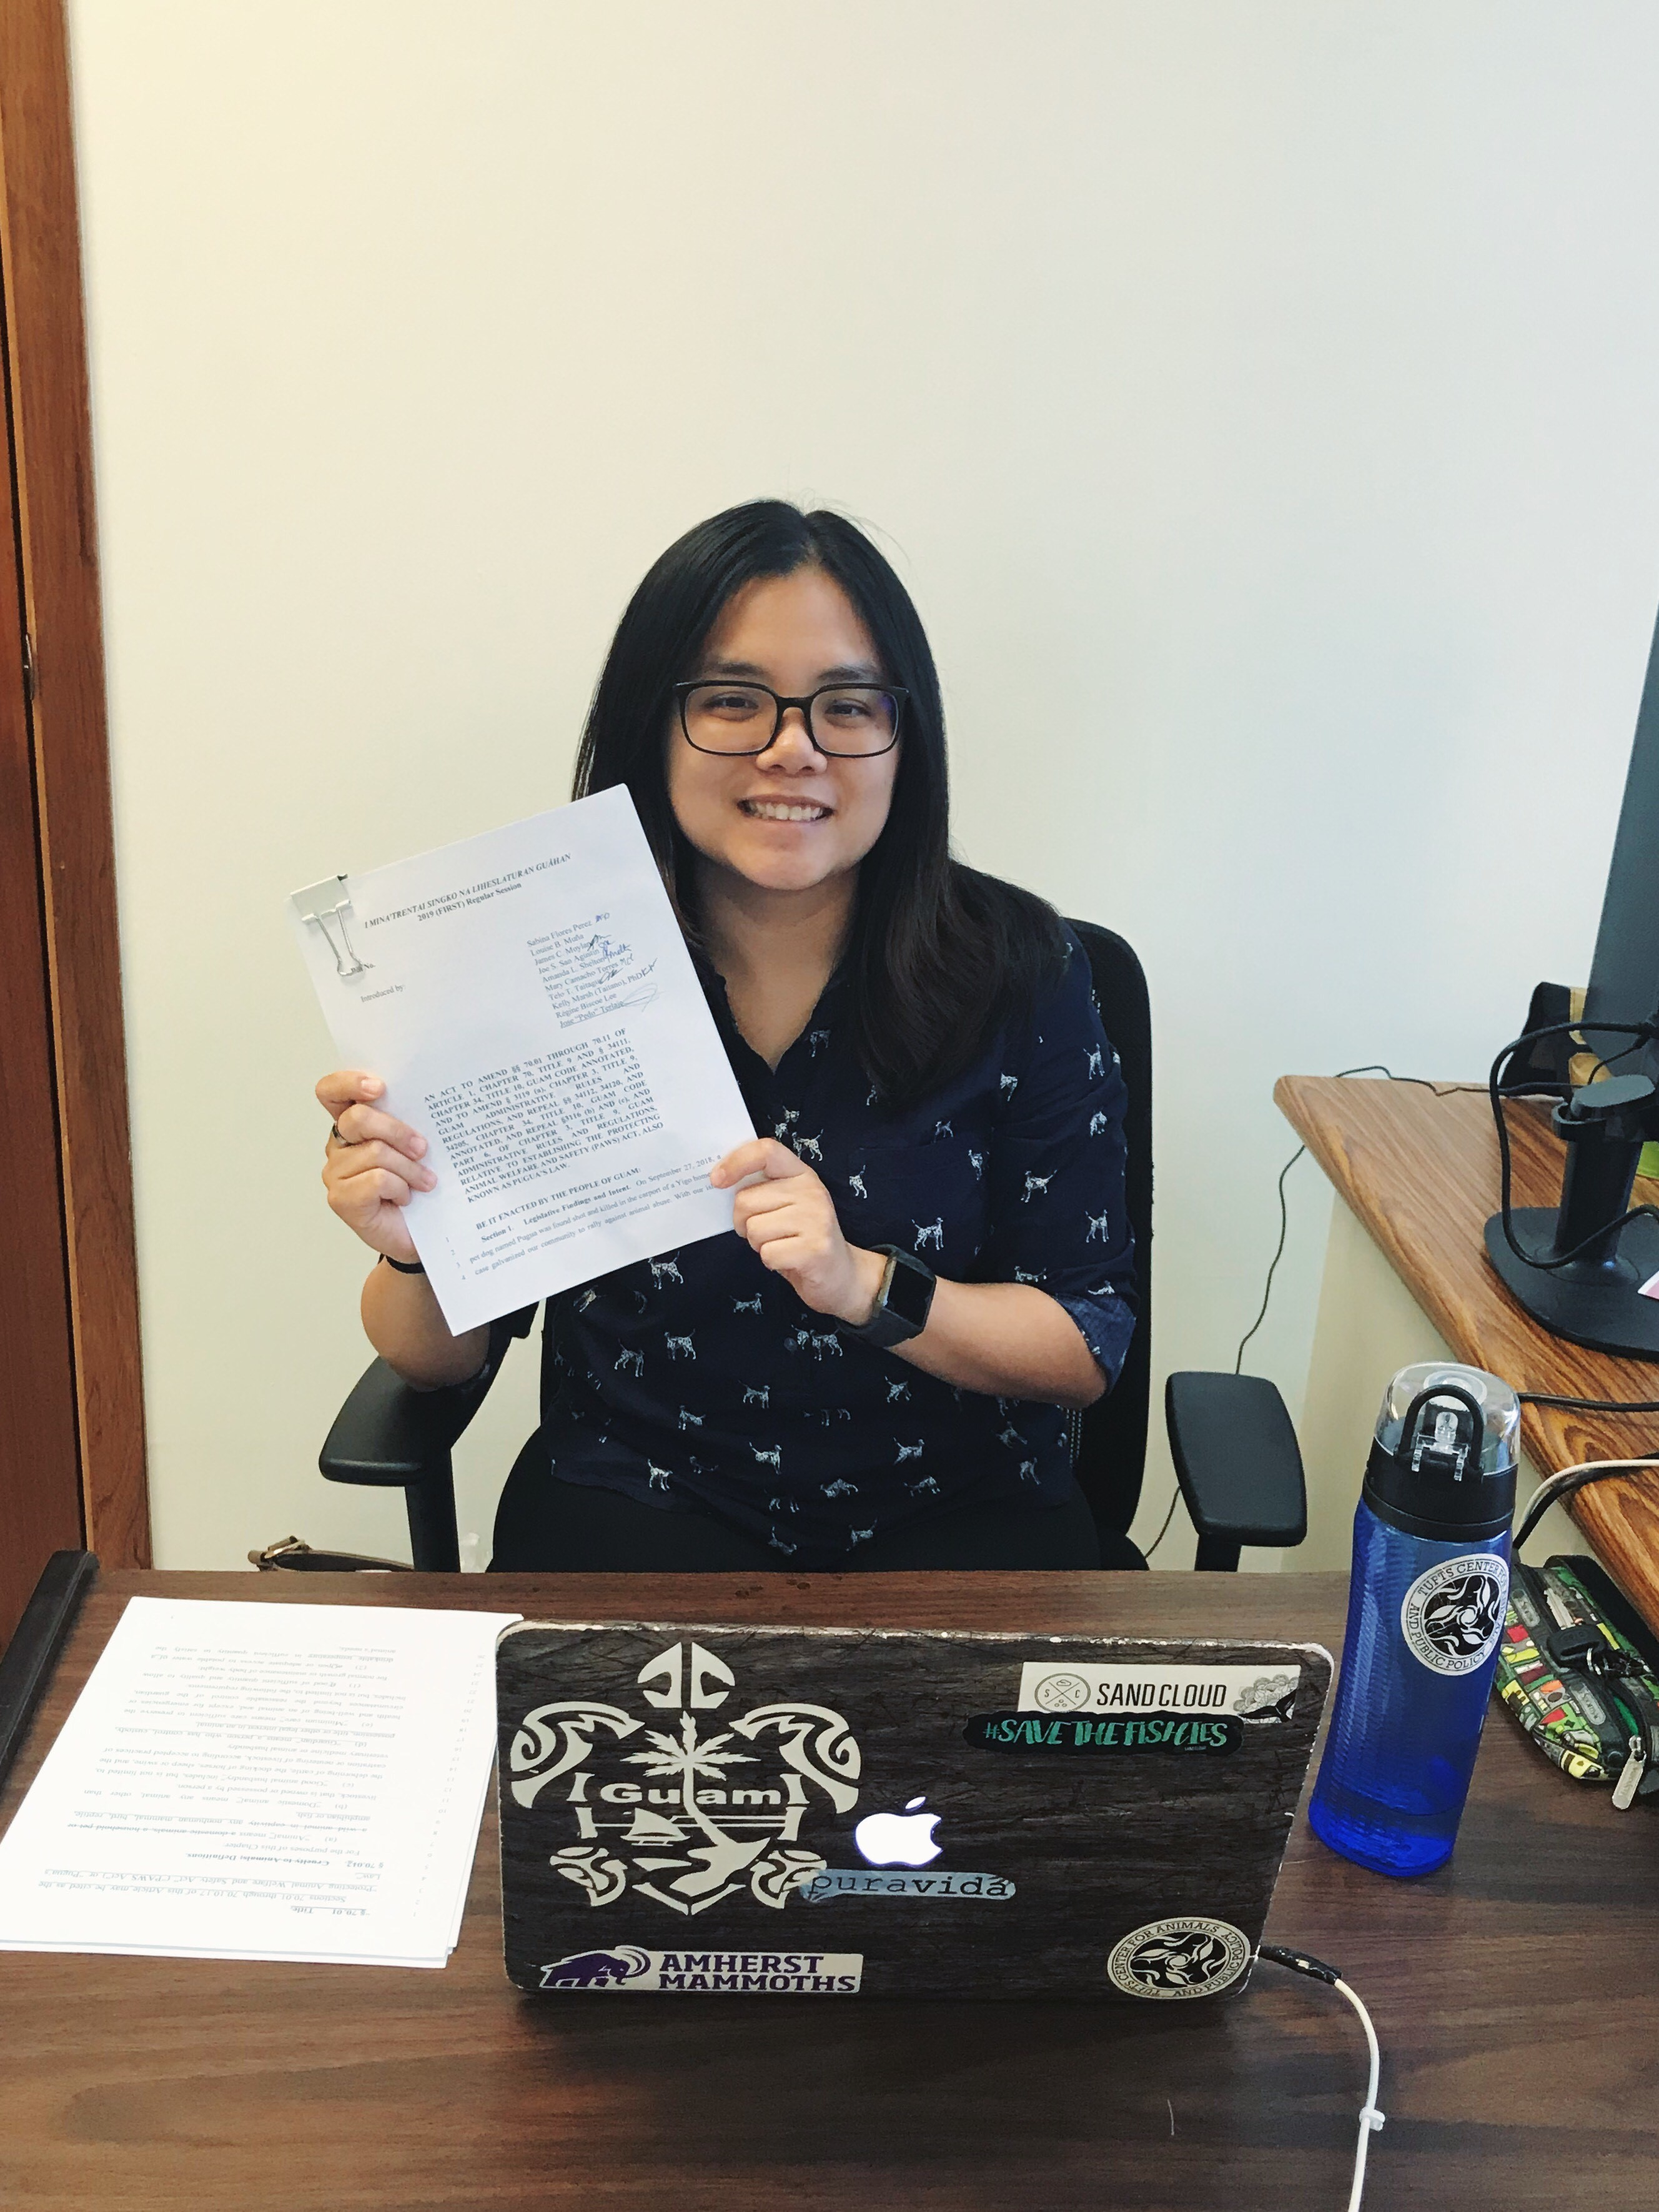 Esther Lam, MAPP class 2018-2019 externship in Guam. The day when I went circulating for signatures from cosponsoring senators in preparation for introduction of the bill